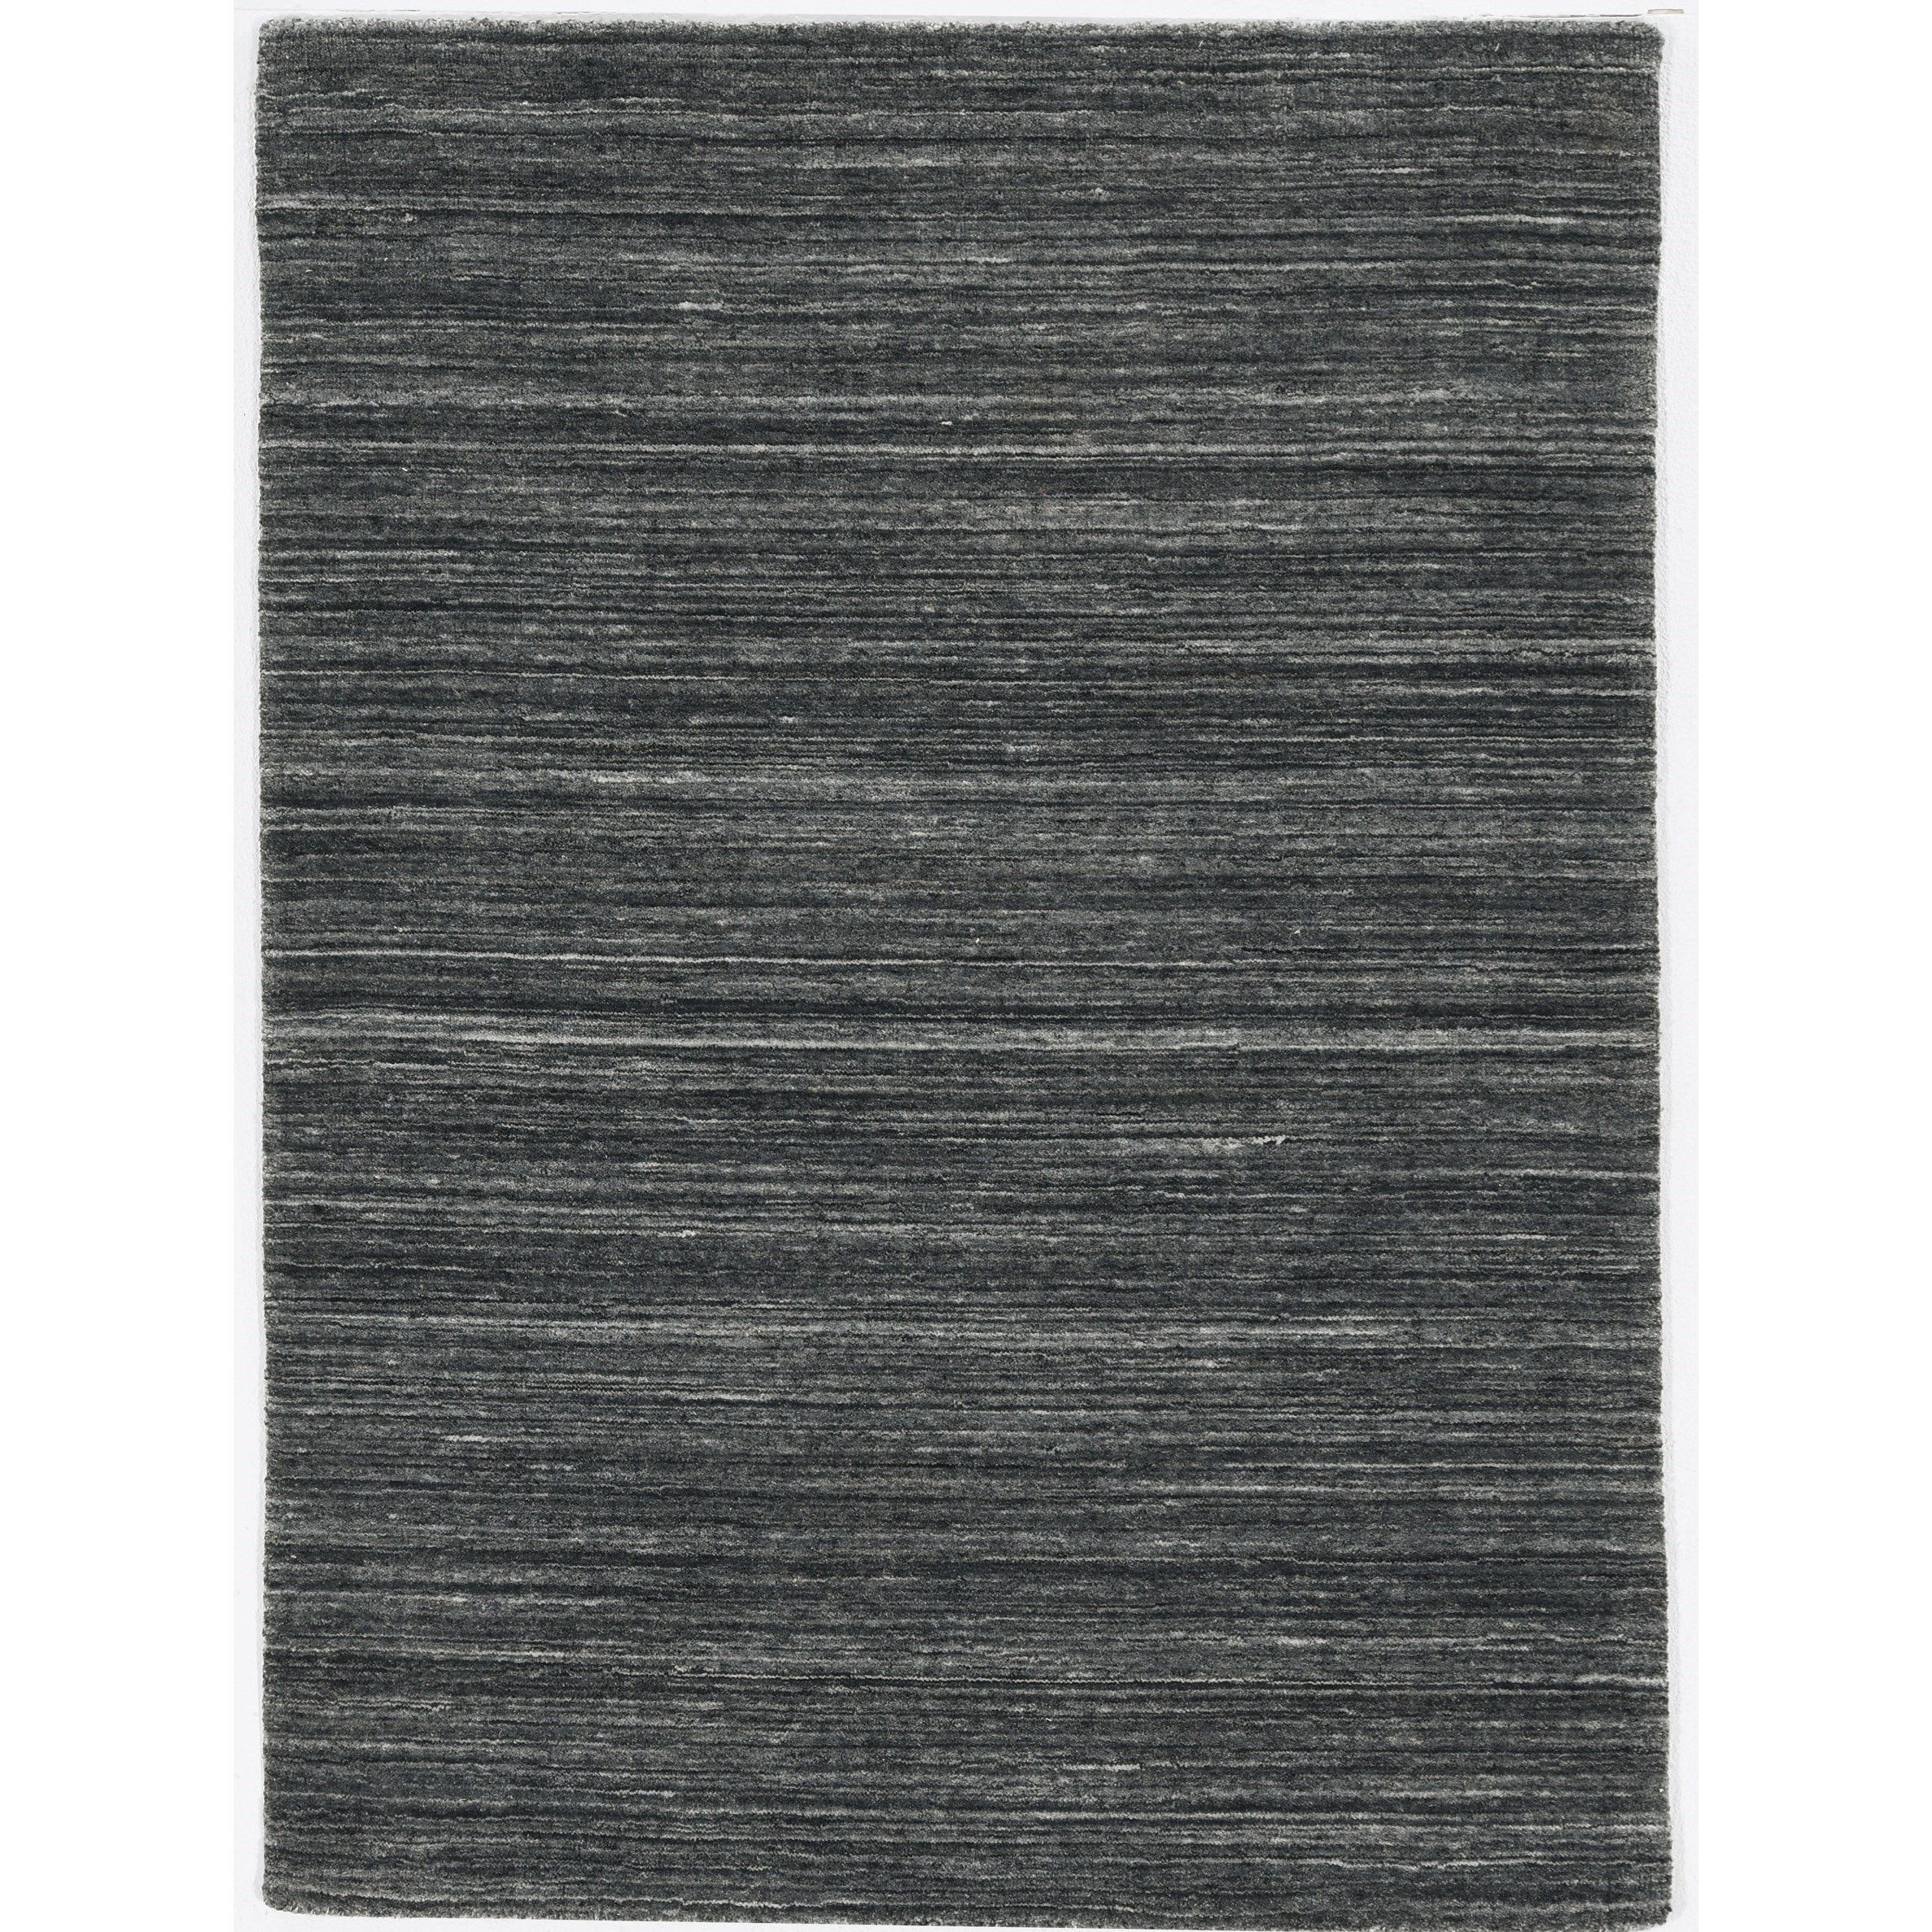 Dune 5' x 8' Charcoal Villa Rug by Kas at Darvin Furniture